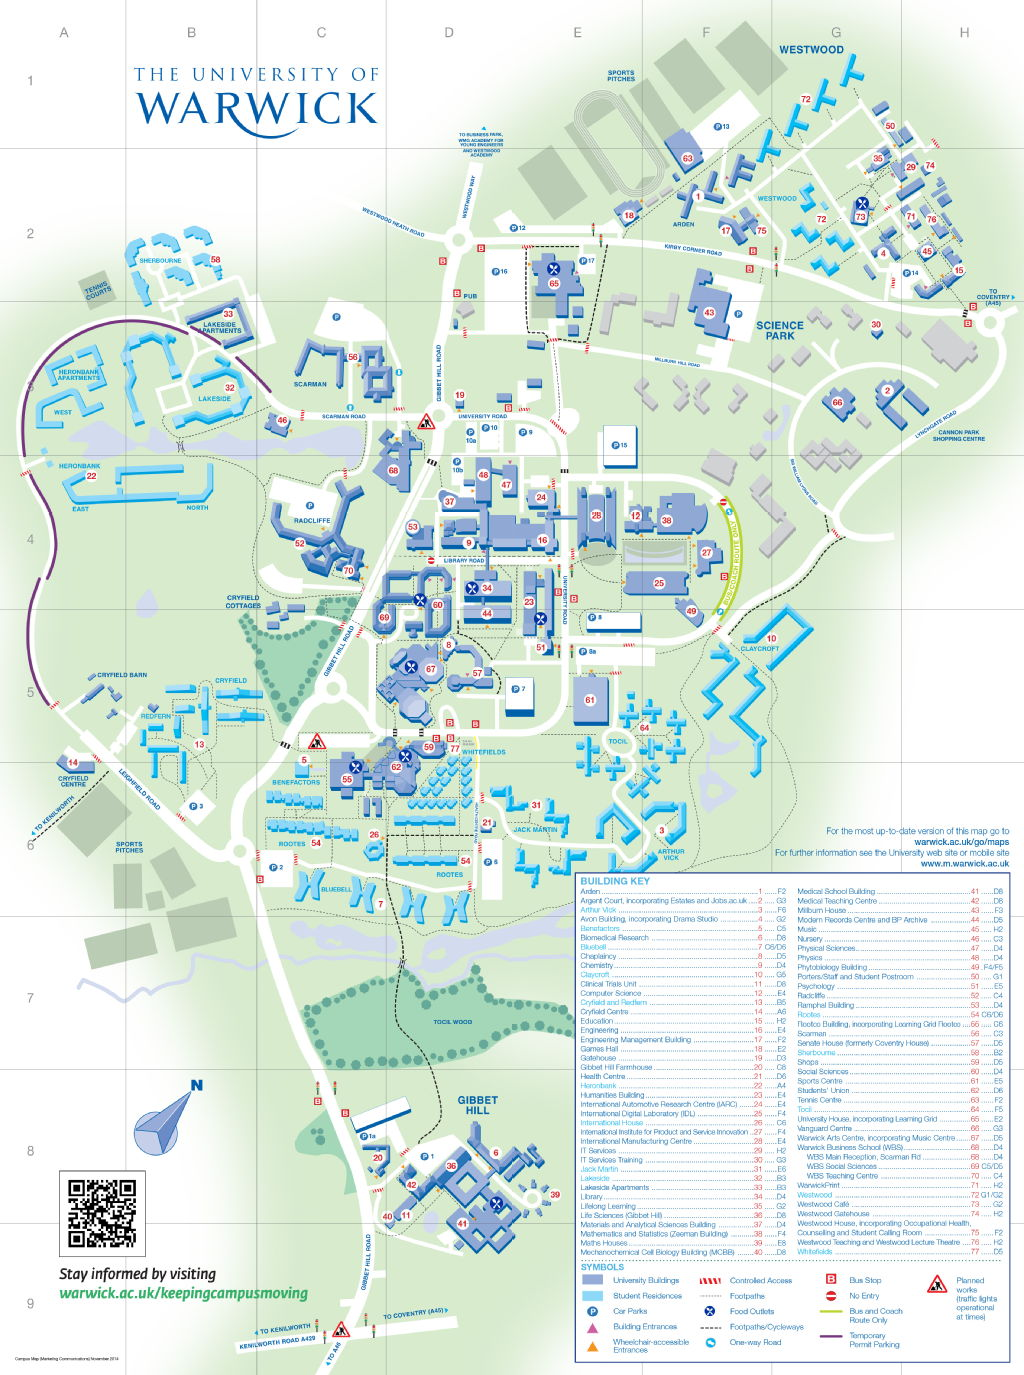 Interactive Map Warwick University of Warwick | How to find the Music Centre Interactive Map Warwick